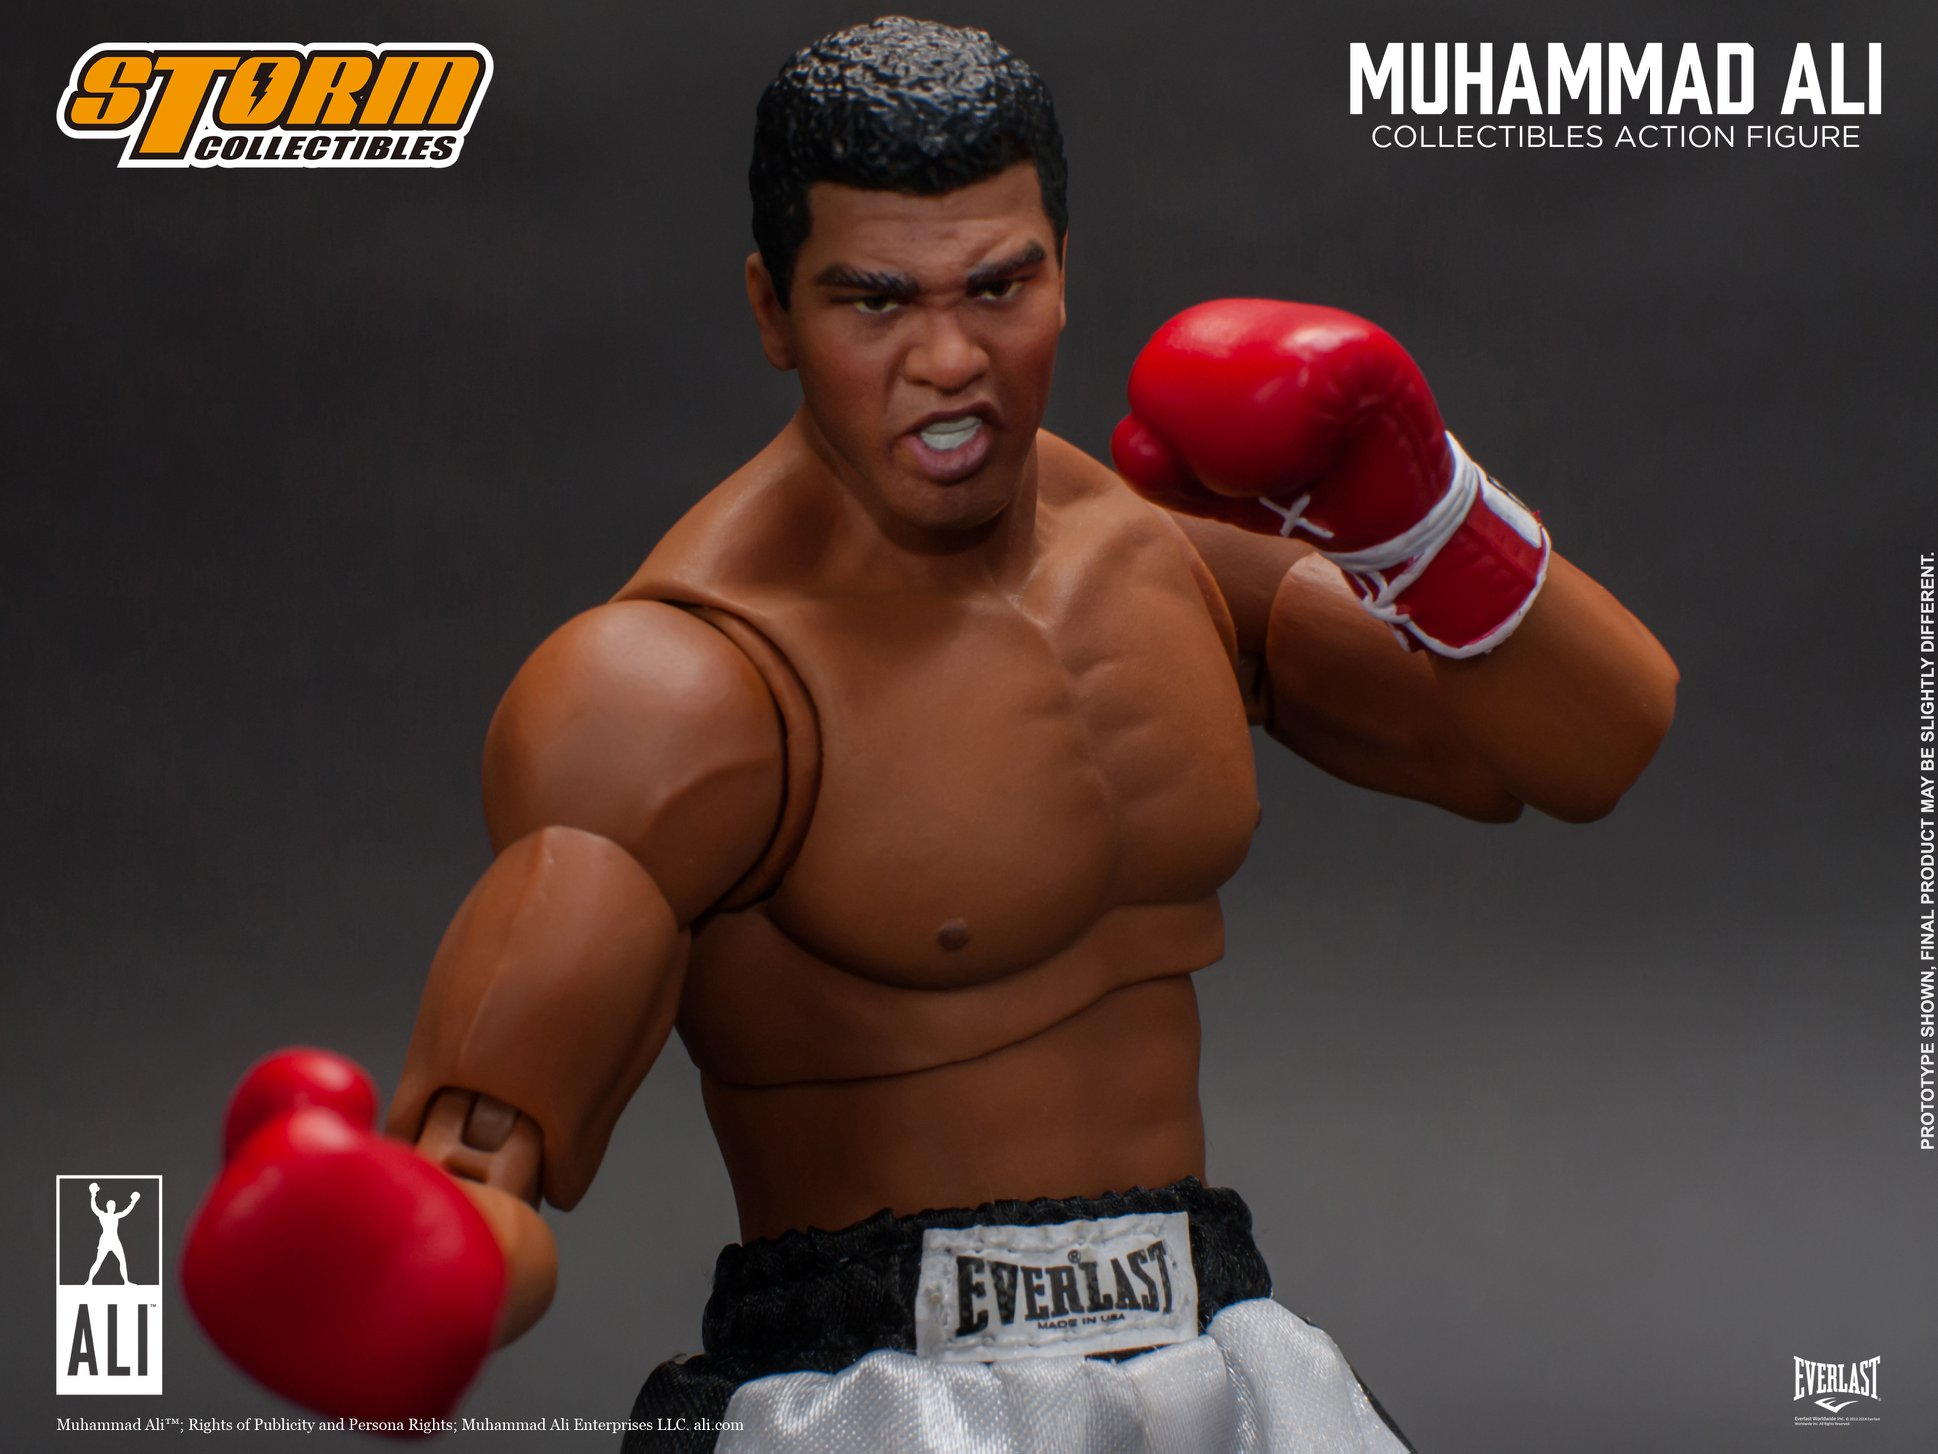 Storm Collectibles Muhammad Ali 7 Inch Figure Revealed ...